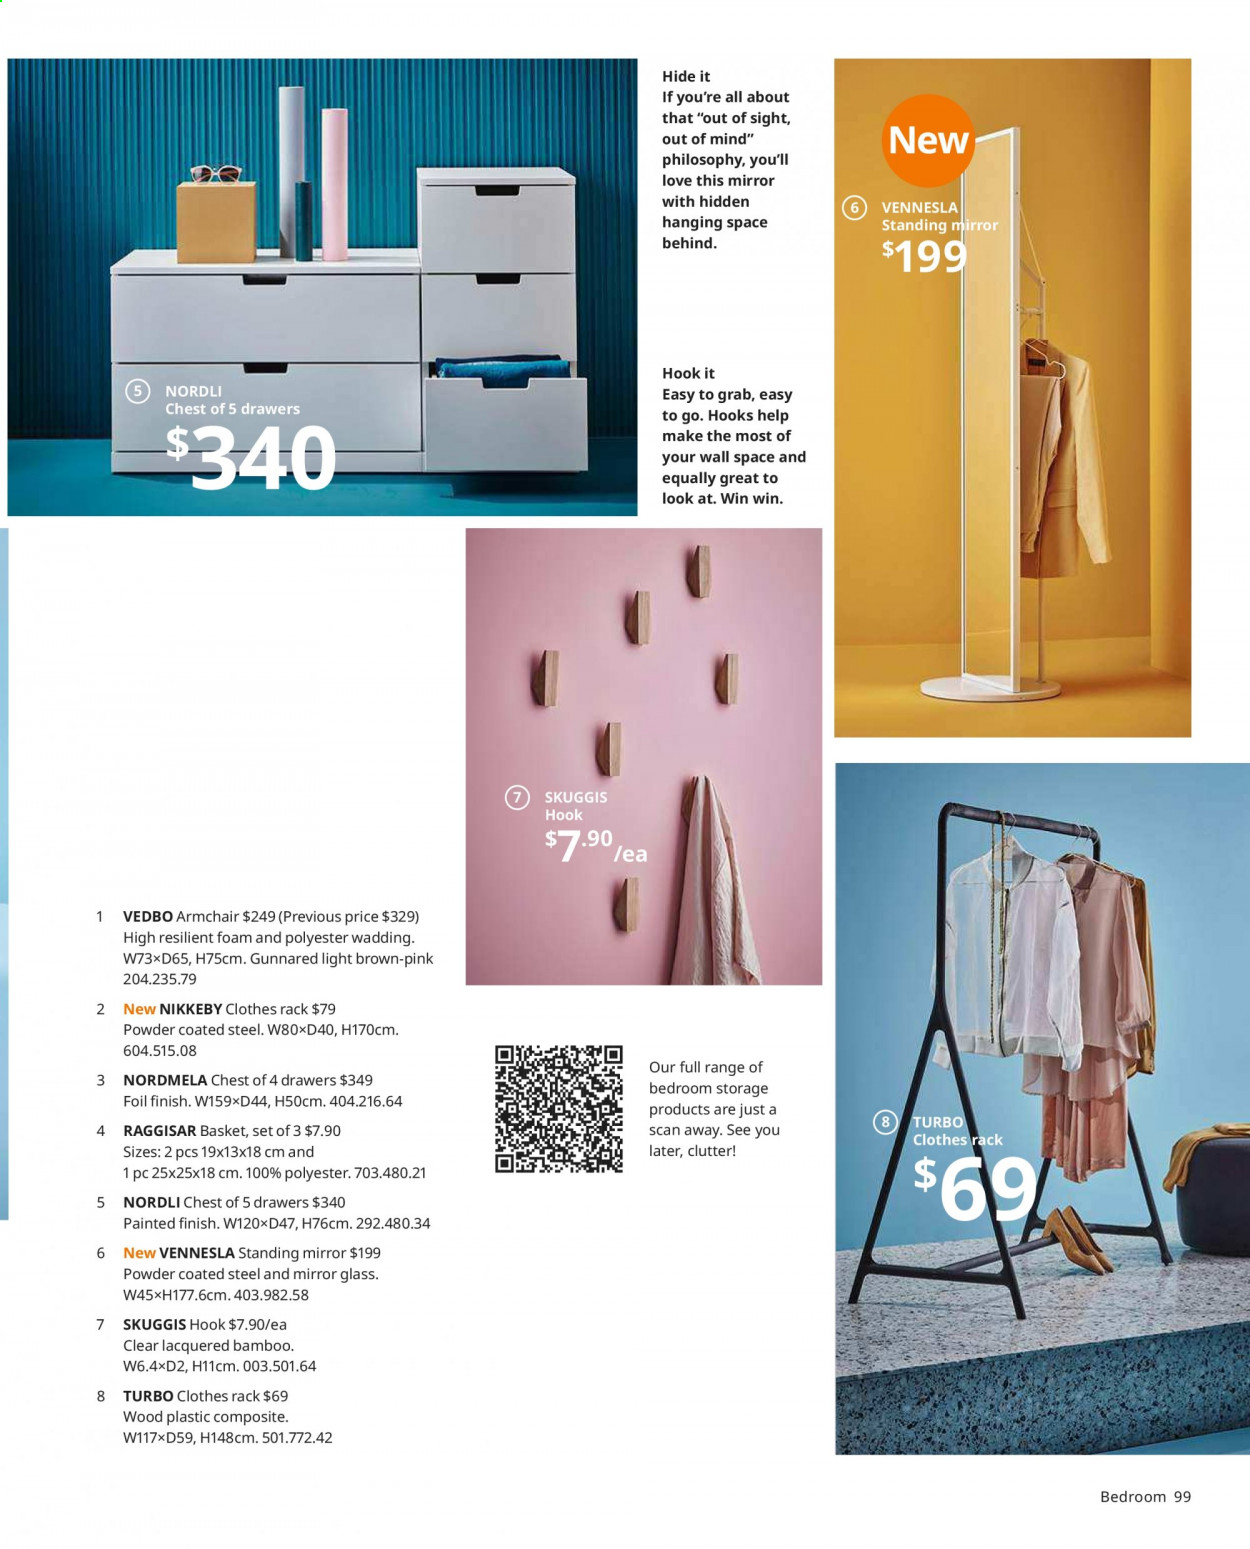 IKEA offer  - Sales products - arm chair, basket, bath towel, glass, mirror, shirt, shoes, towel, hook, chair, powder. Page 99.